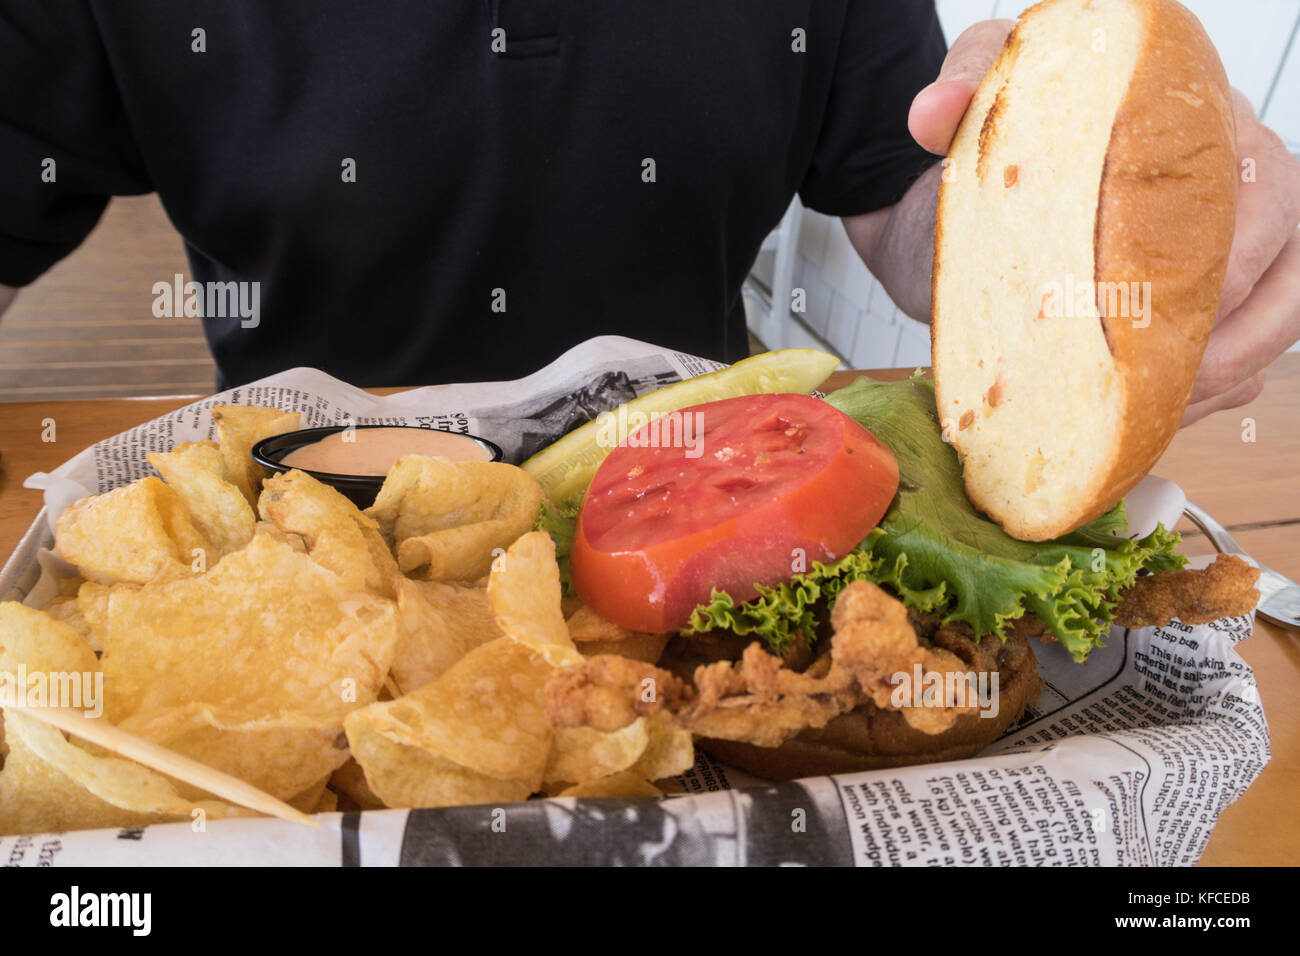 Soft Shell Crab Sandwich,The Claw House Restaurant, Murrells Inlet, SC, USA - Stock Image